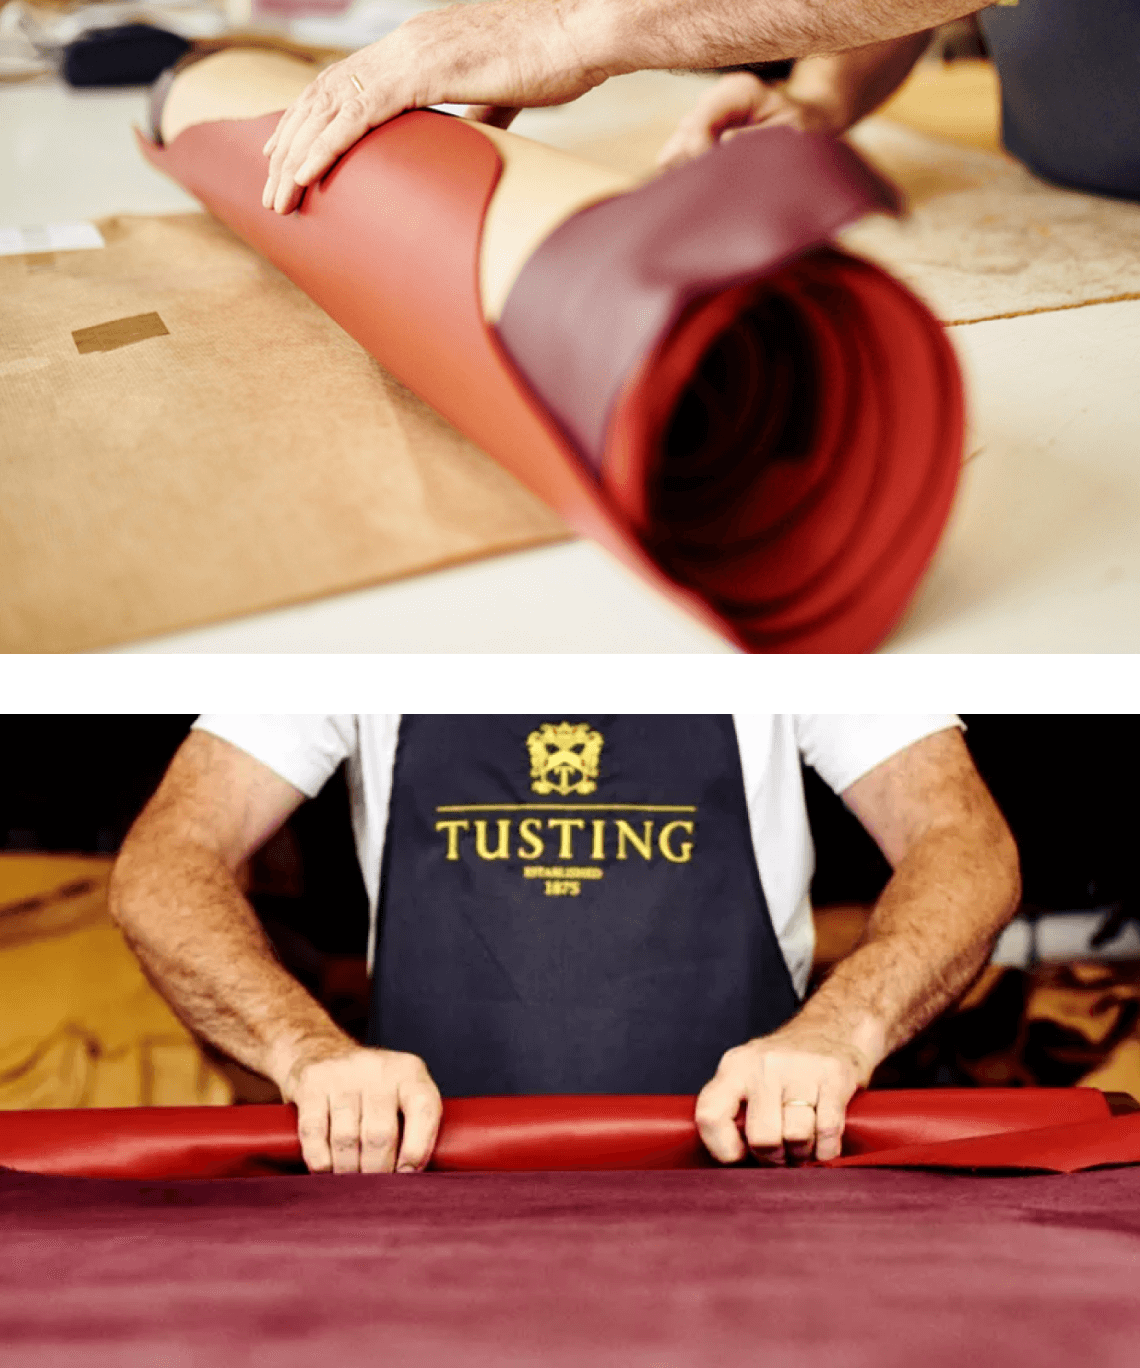 Tusting - Challenger brand for Leather Goods - how we researched their company to gain opportunities for CRO